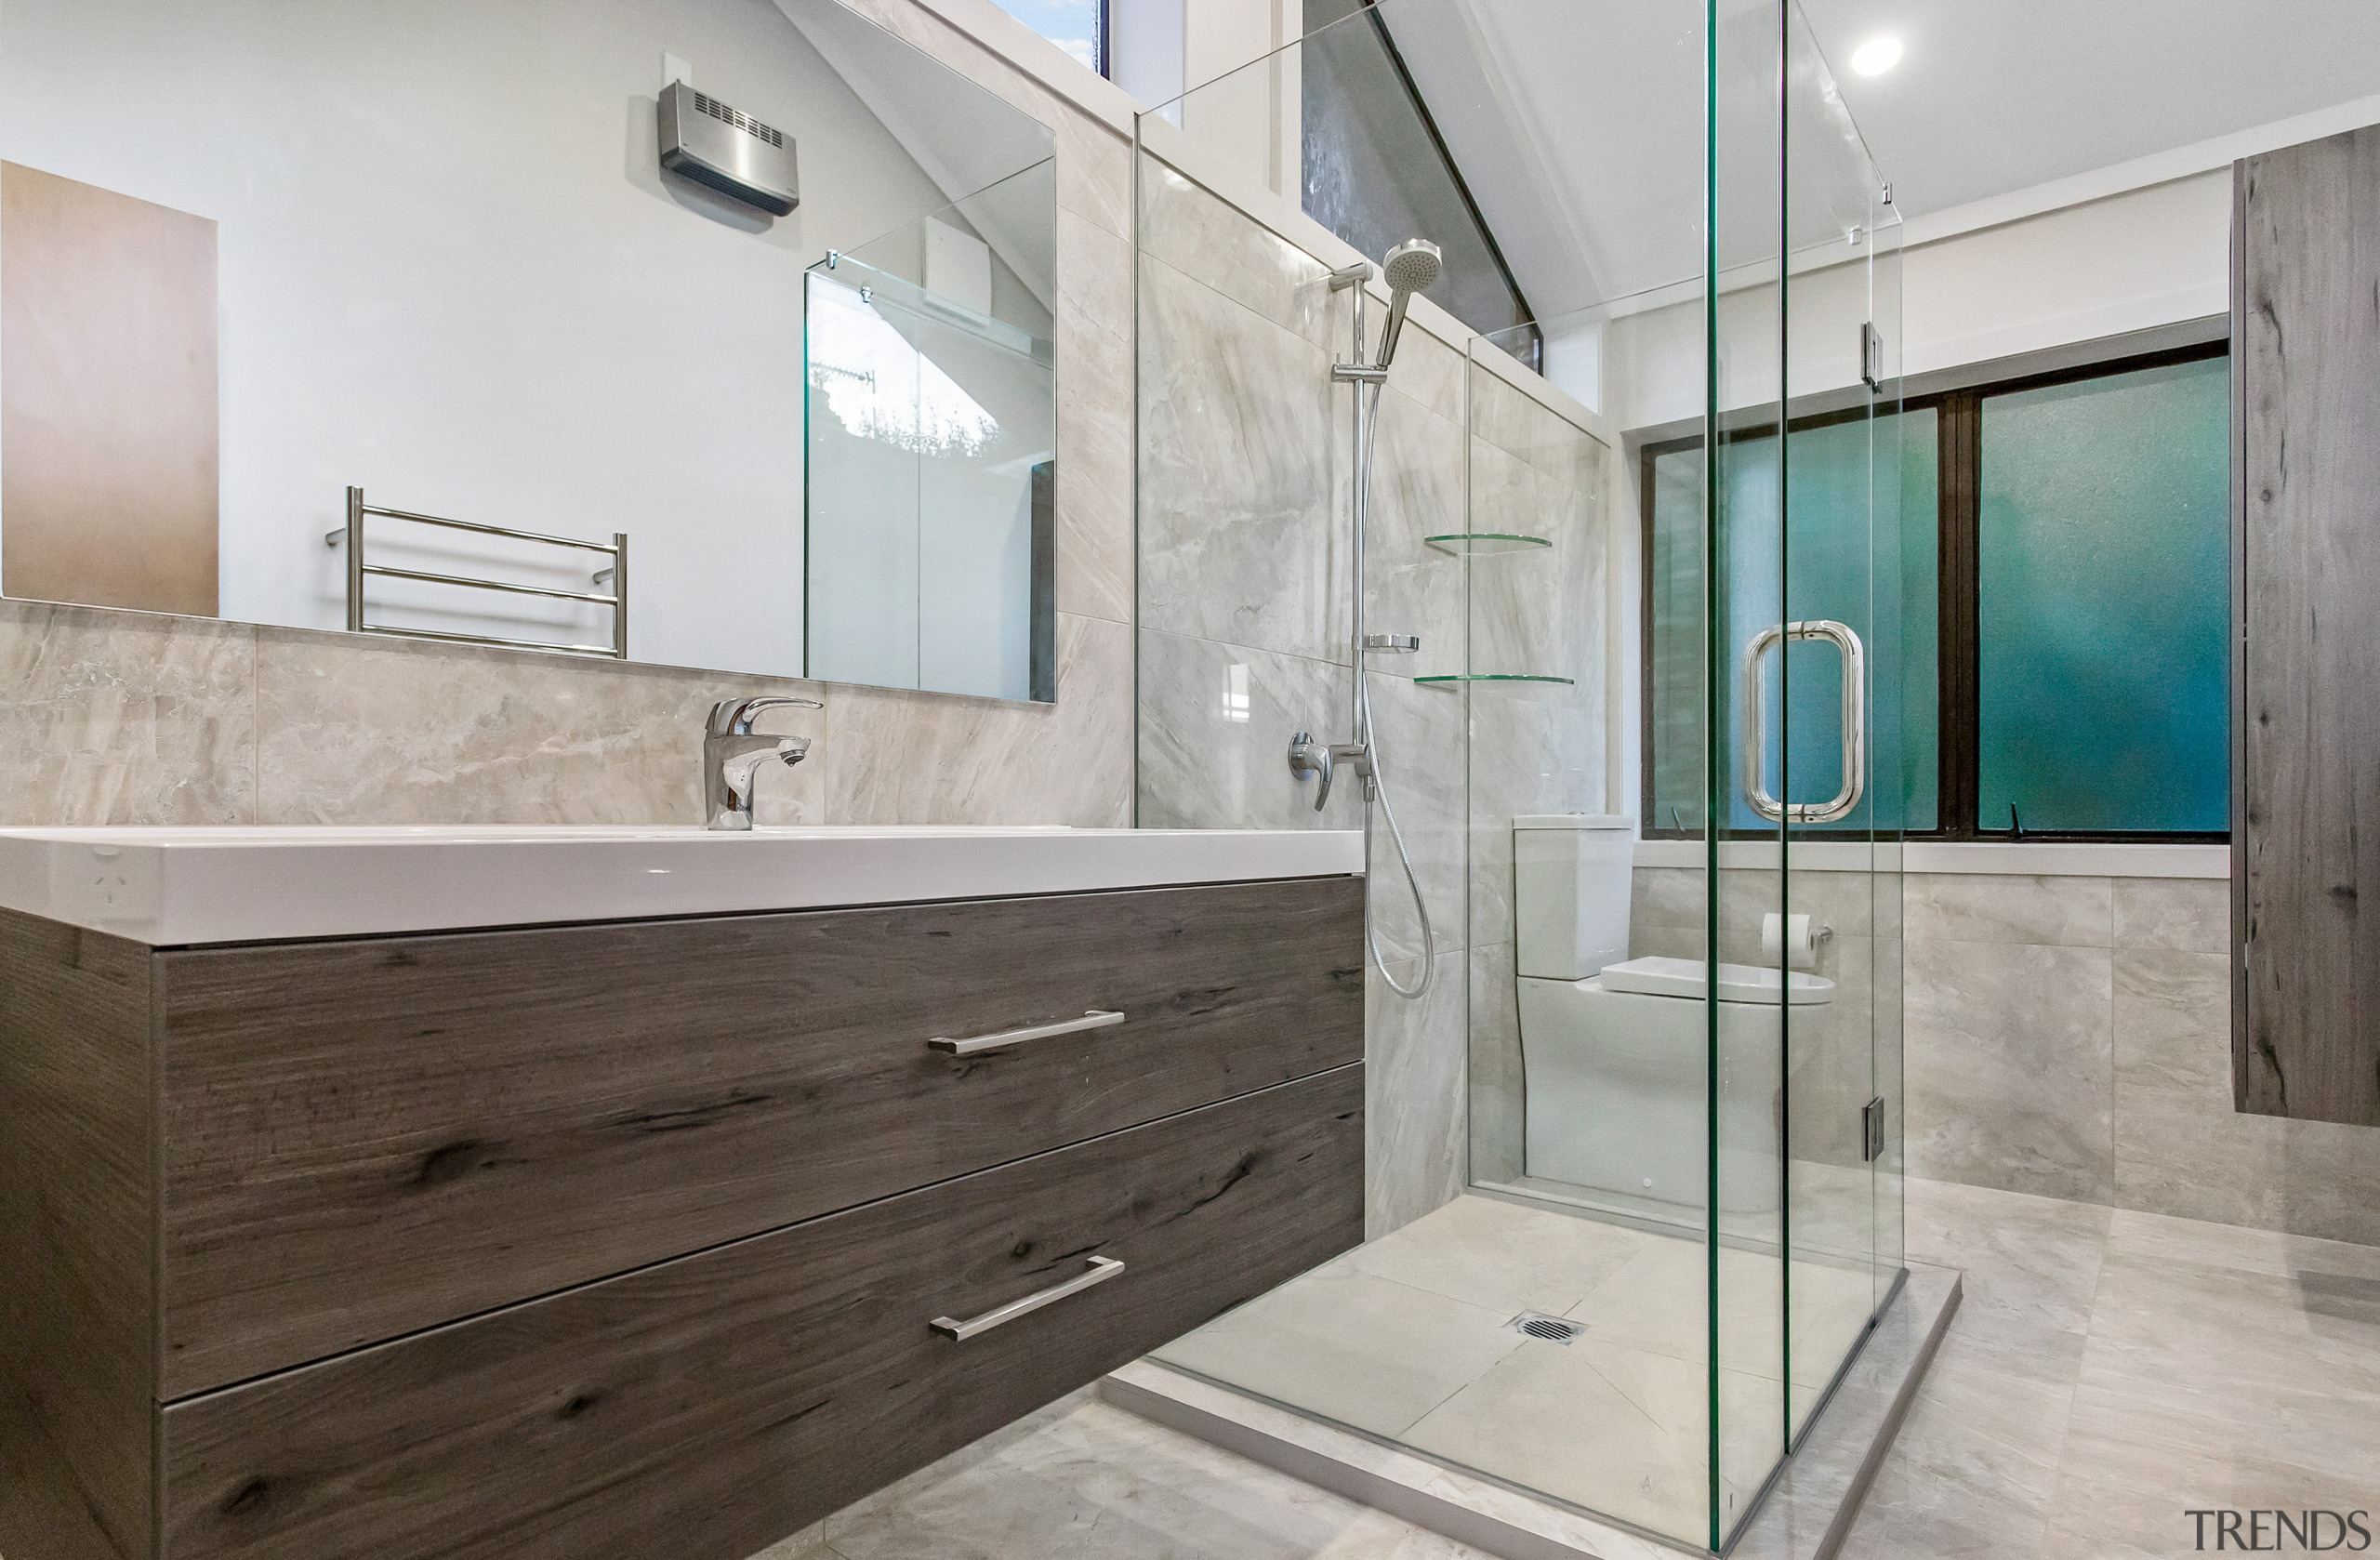 EJ Building – Highly Commended – 2019 TIDA architecture, bathroom, bathroom accessory, building, cabinetry, ceiling, countertop, floor, flooring, furniture, glass, home, house, interior design, material property, plumbing fixture, property, real estate, room, tap, tile, wall, gray